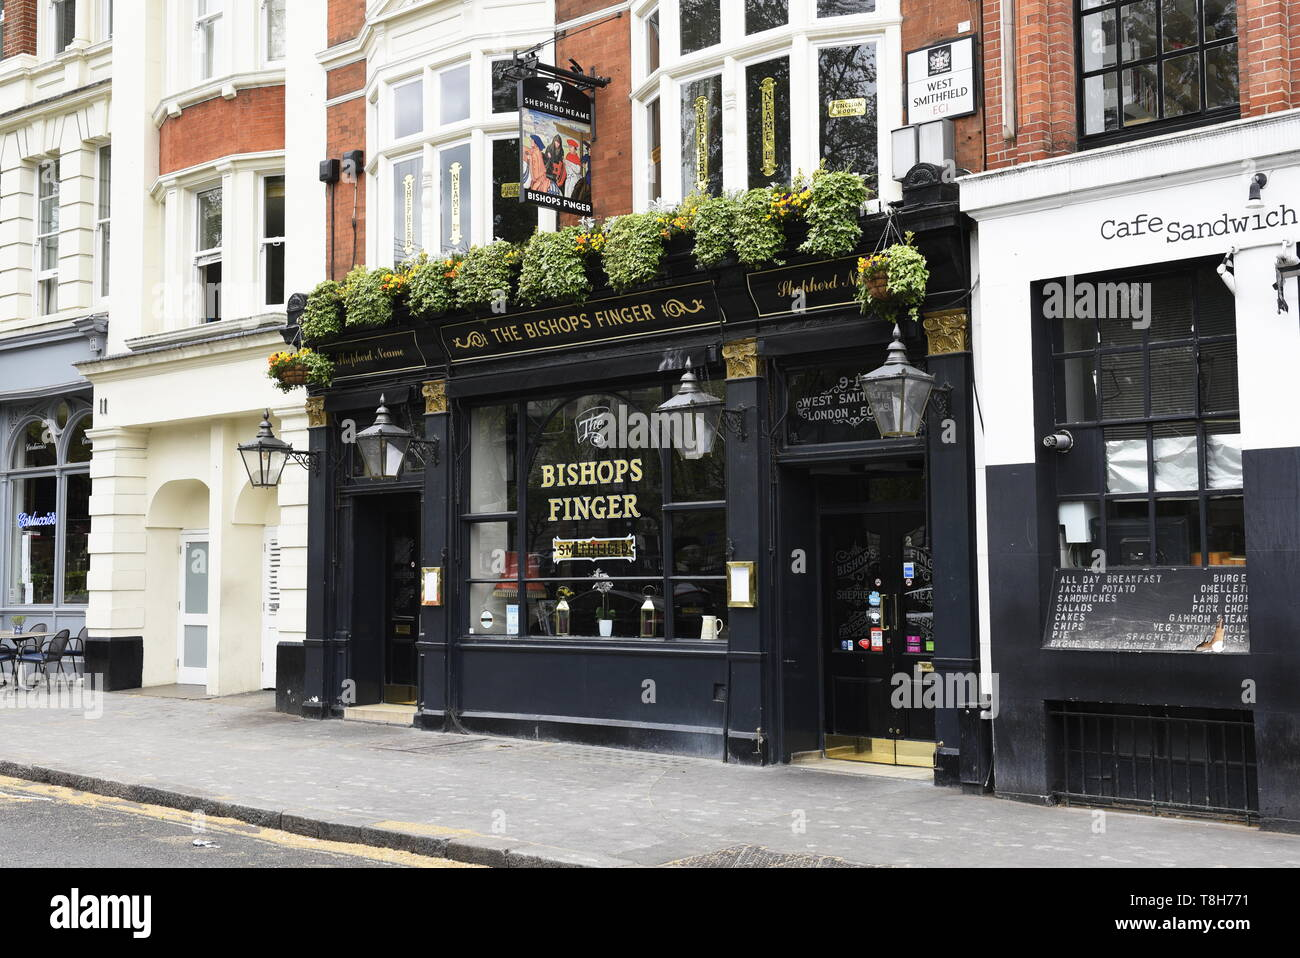 The Bishops Finger pub, 9-10 W Smithfield, Farringdon, London EC1A 9JR. Classic, informal pub with real ales on tap and meat sourced from nearby Smith - Stock Image